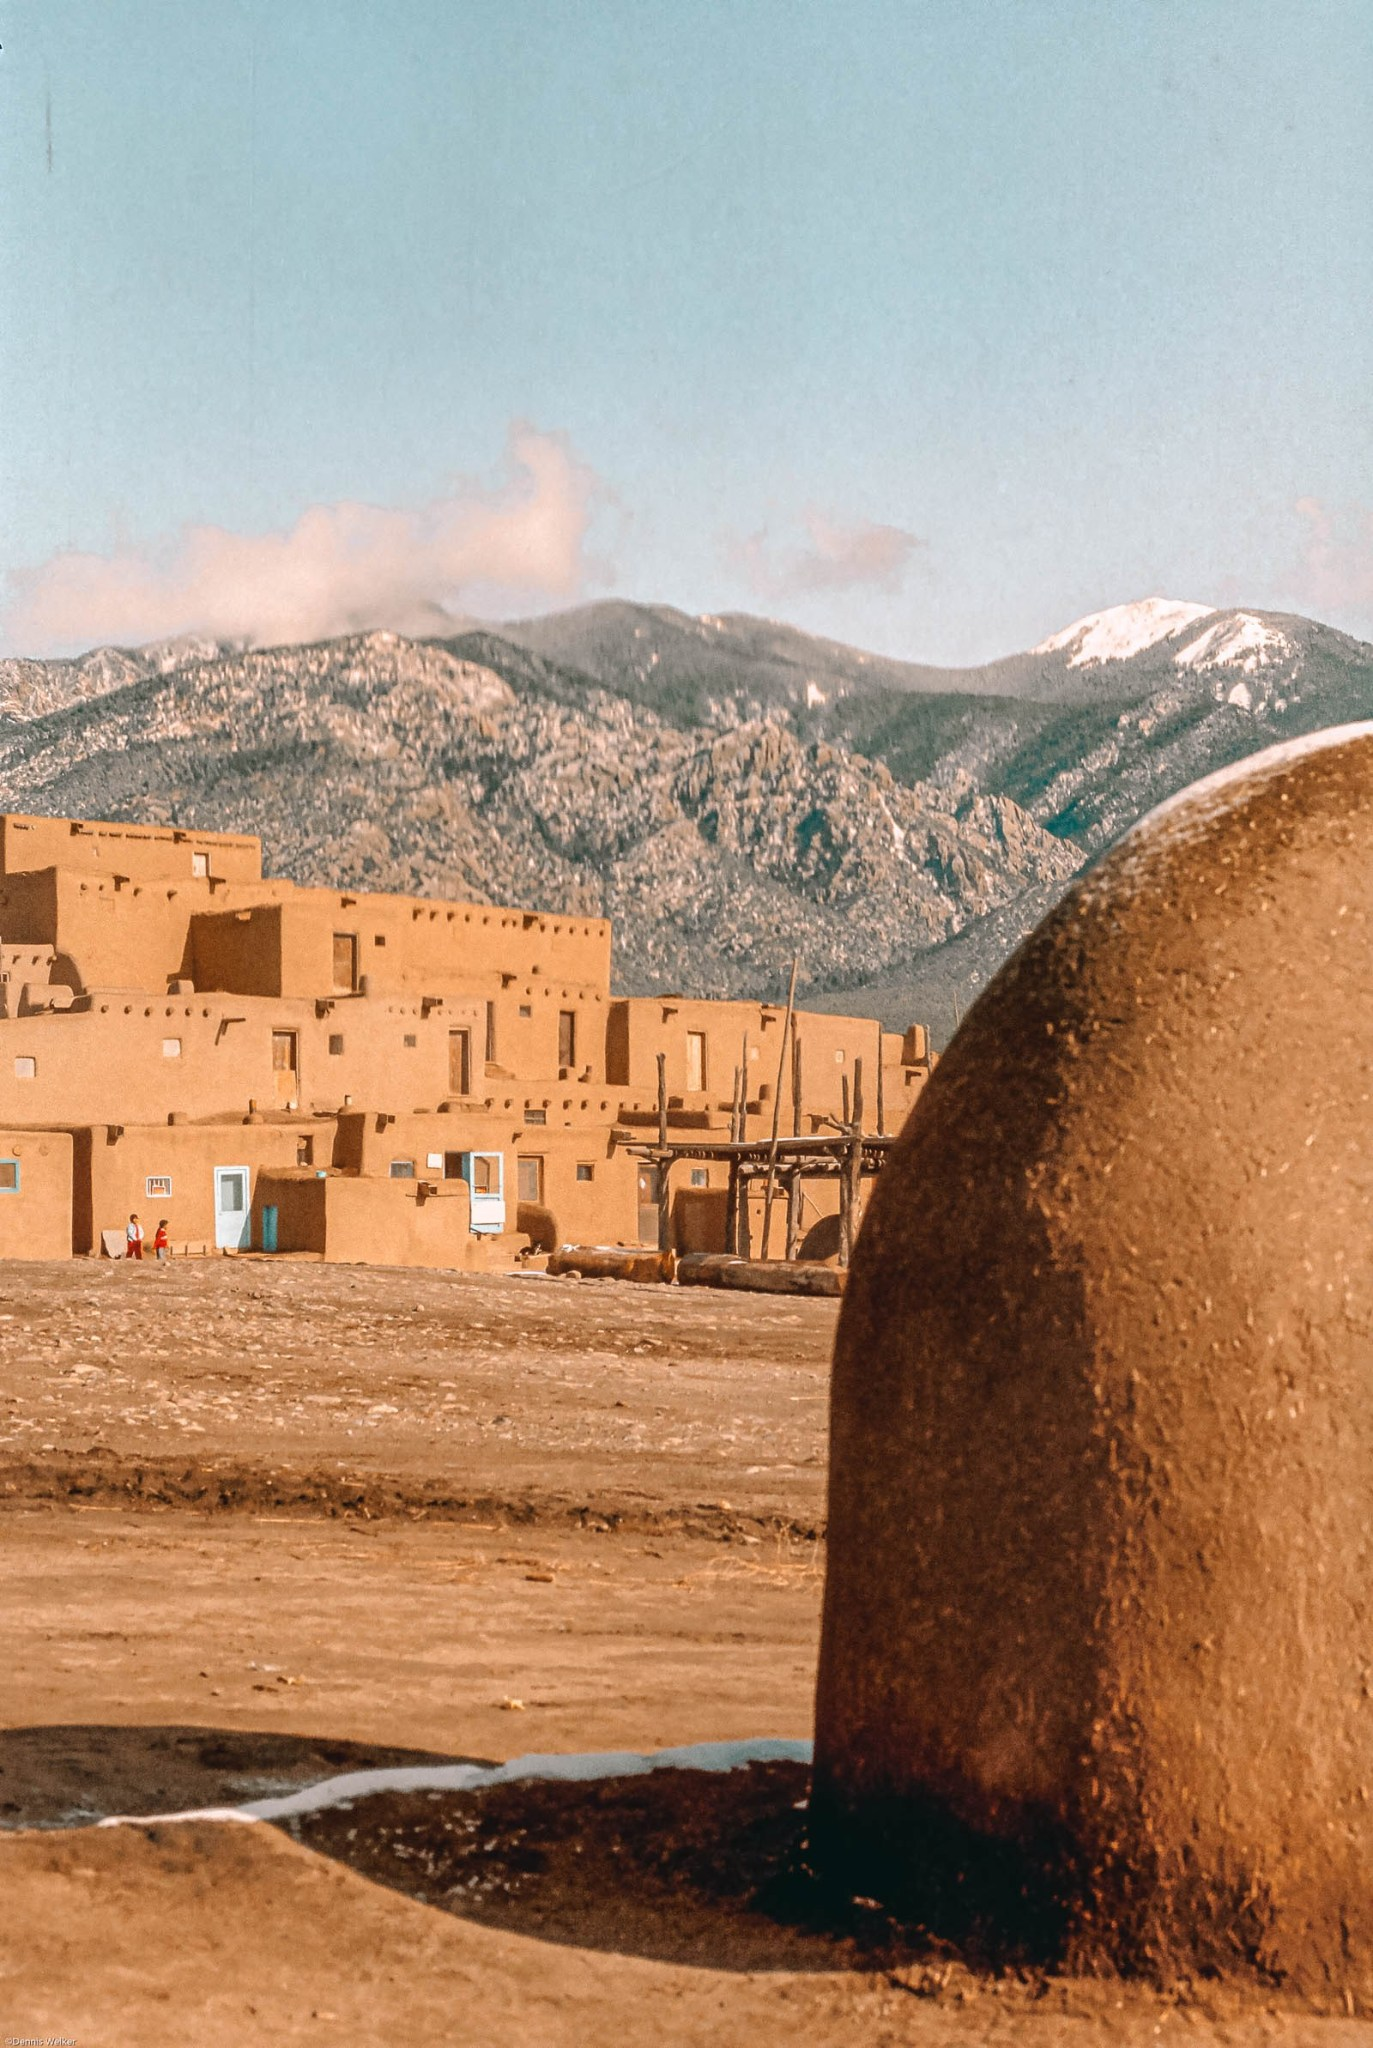 Top 10 Things You Must Do In New Mexico – Travel Guide for Mexico